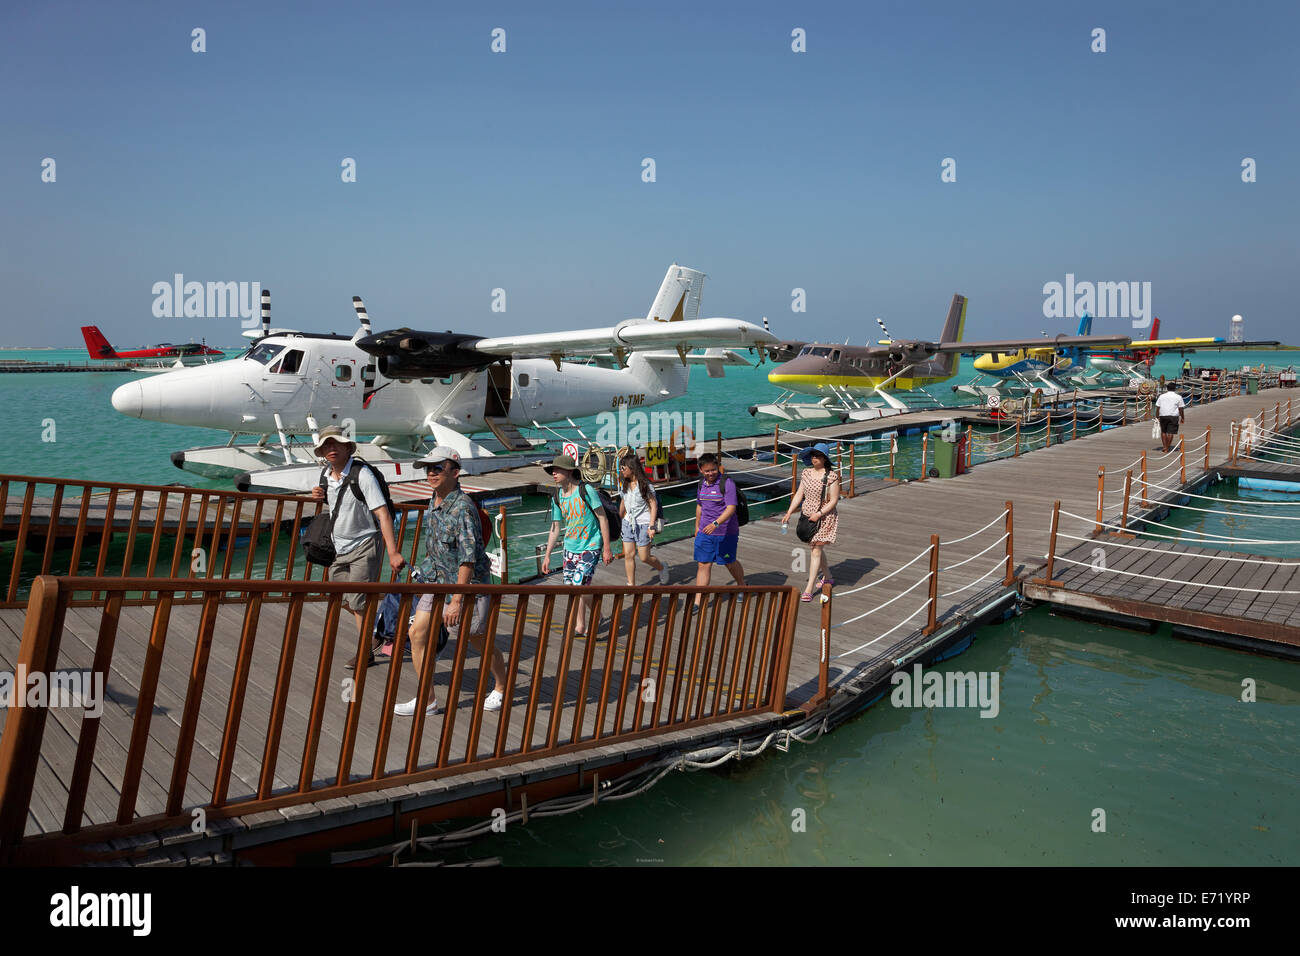 Tourists leaving the pontoon with hydroplanes moored, De Havilland Canada DHC-6 300 Twin Otter, Malé International - Stock Image